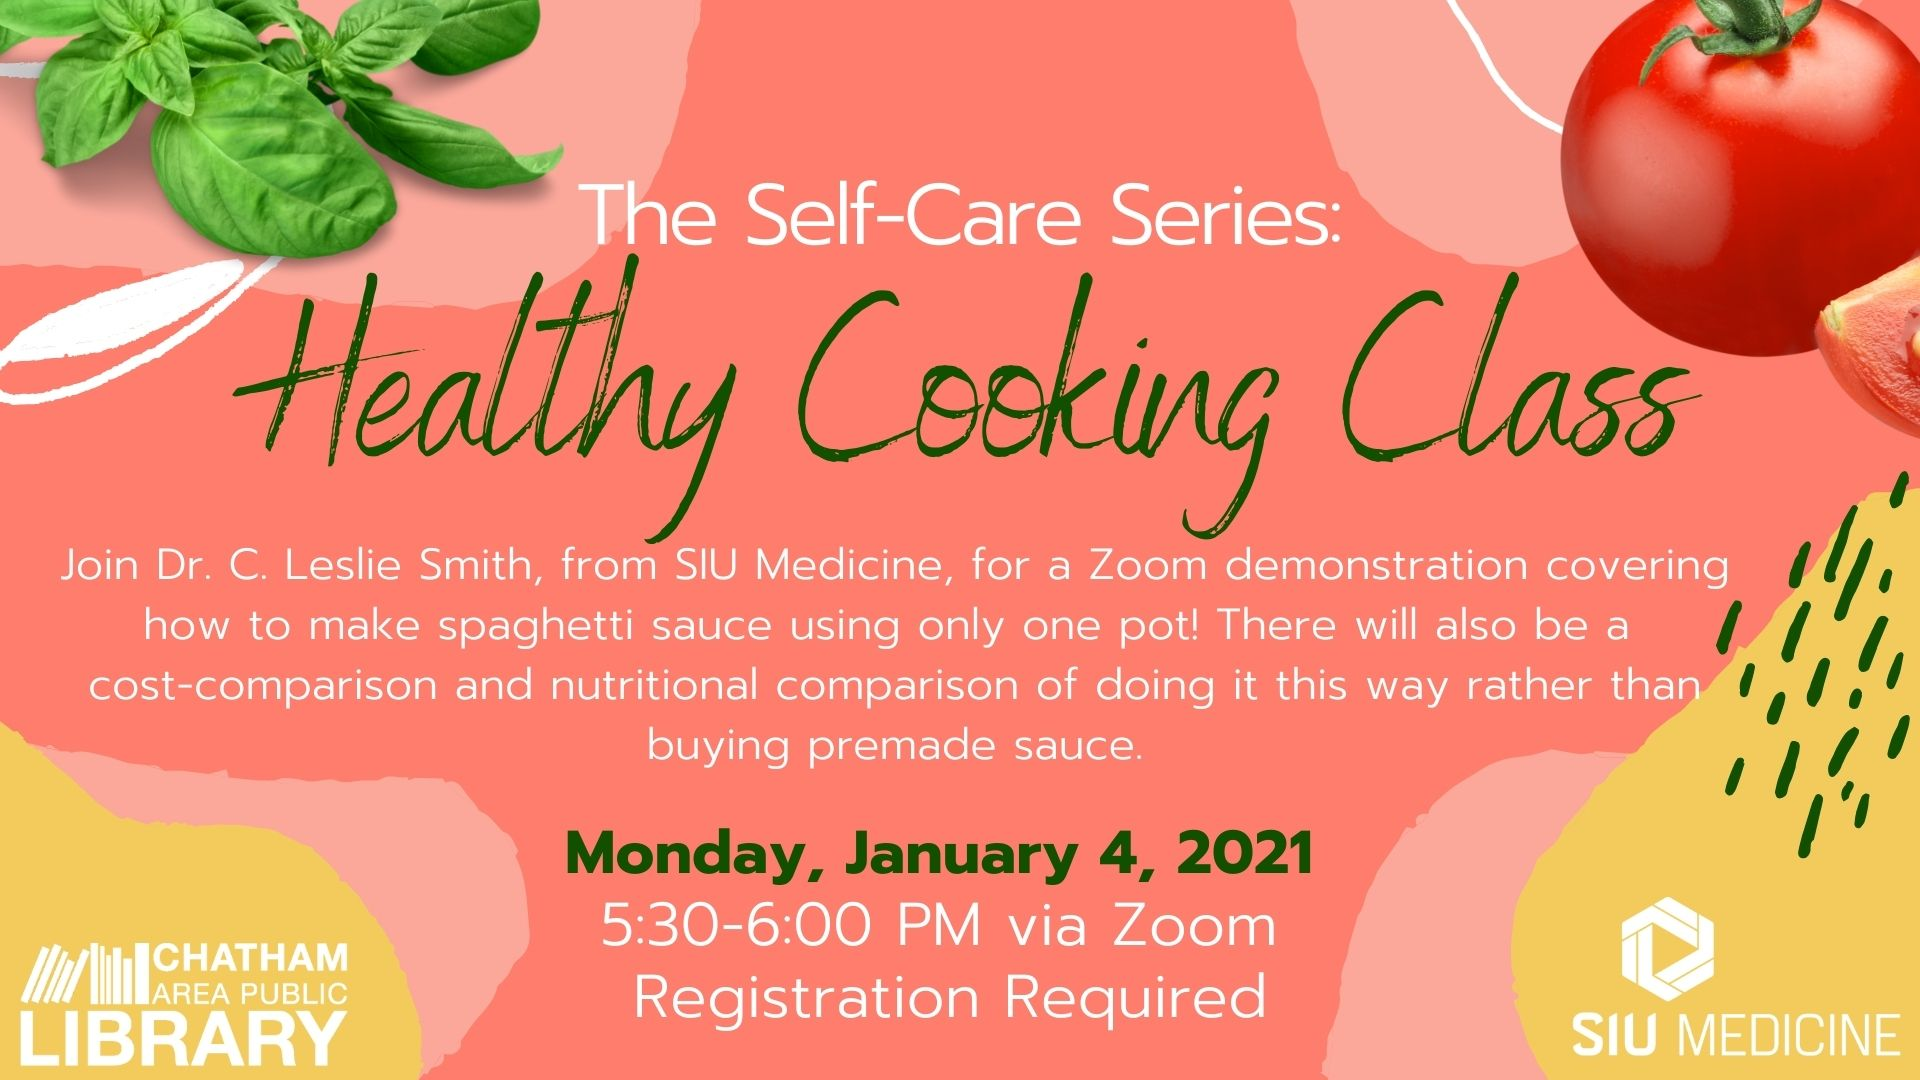 (Virtual) Healthy Cooking Class at the Chatham Area Public Library